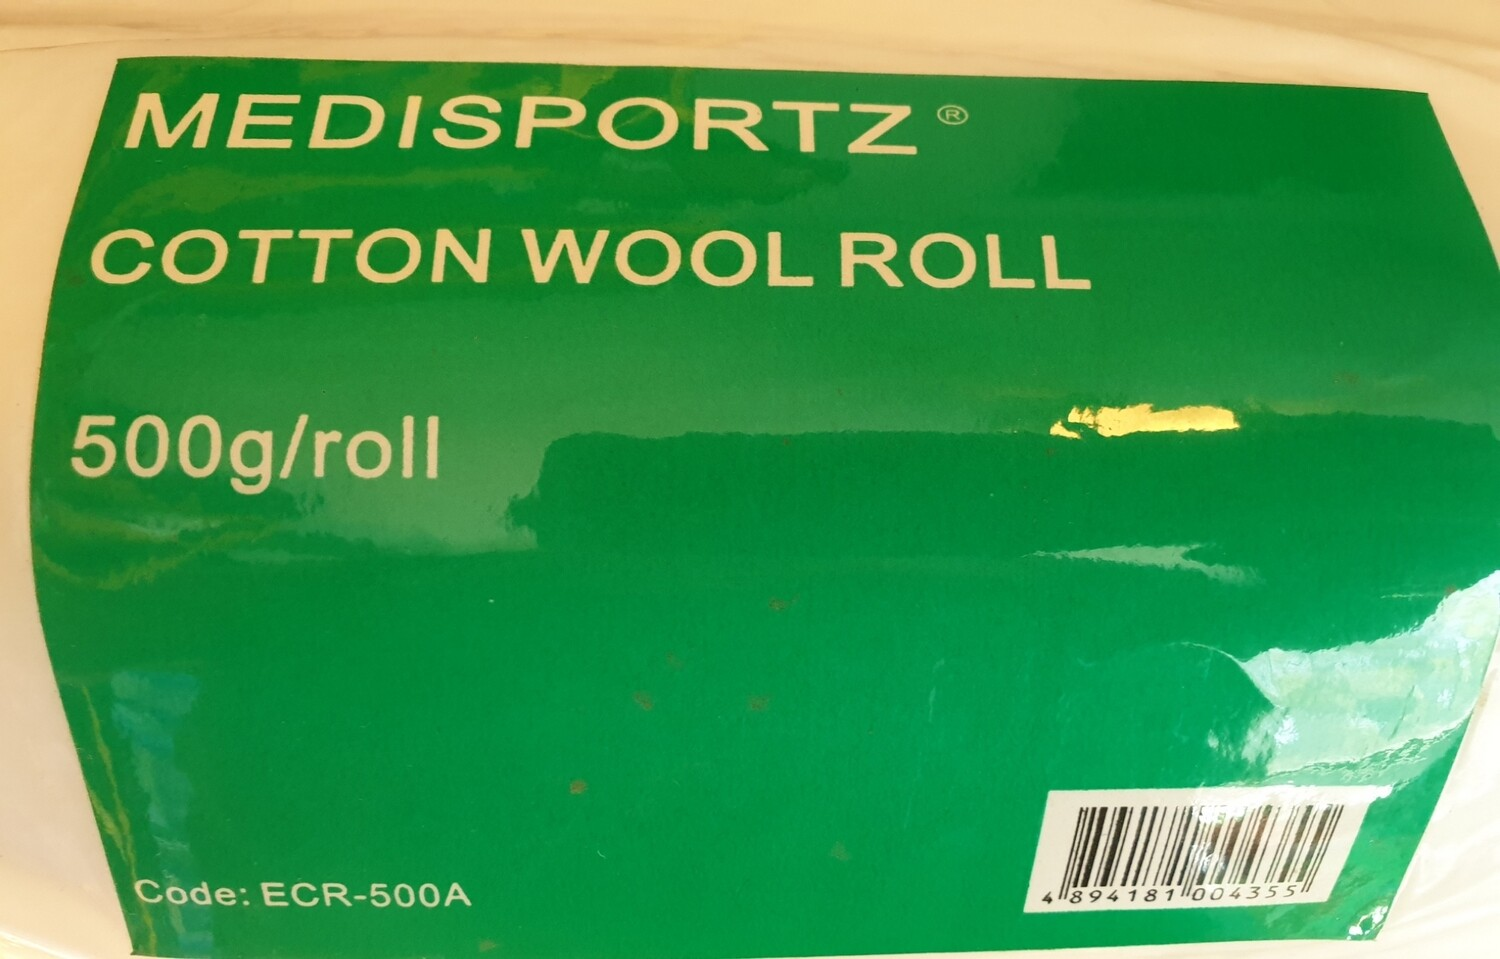 MediSportz Cotton Wool Roll 400g